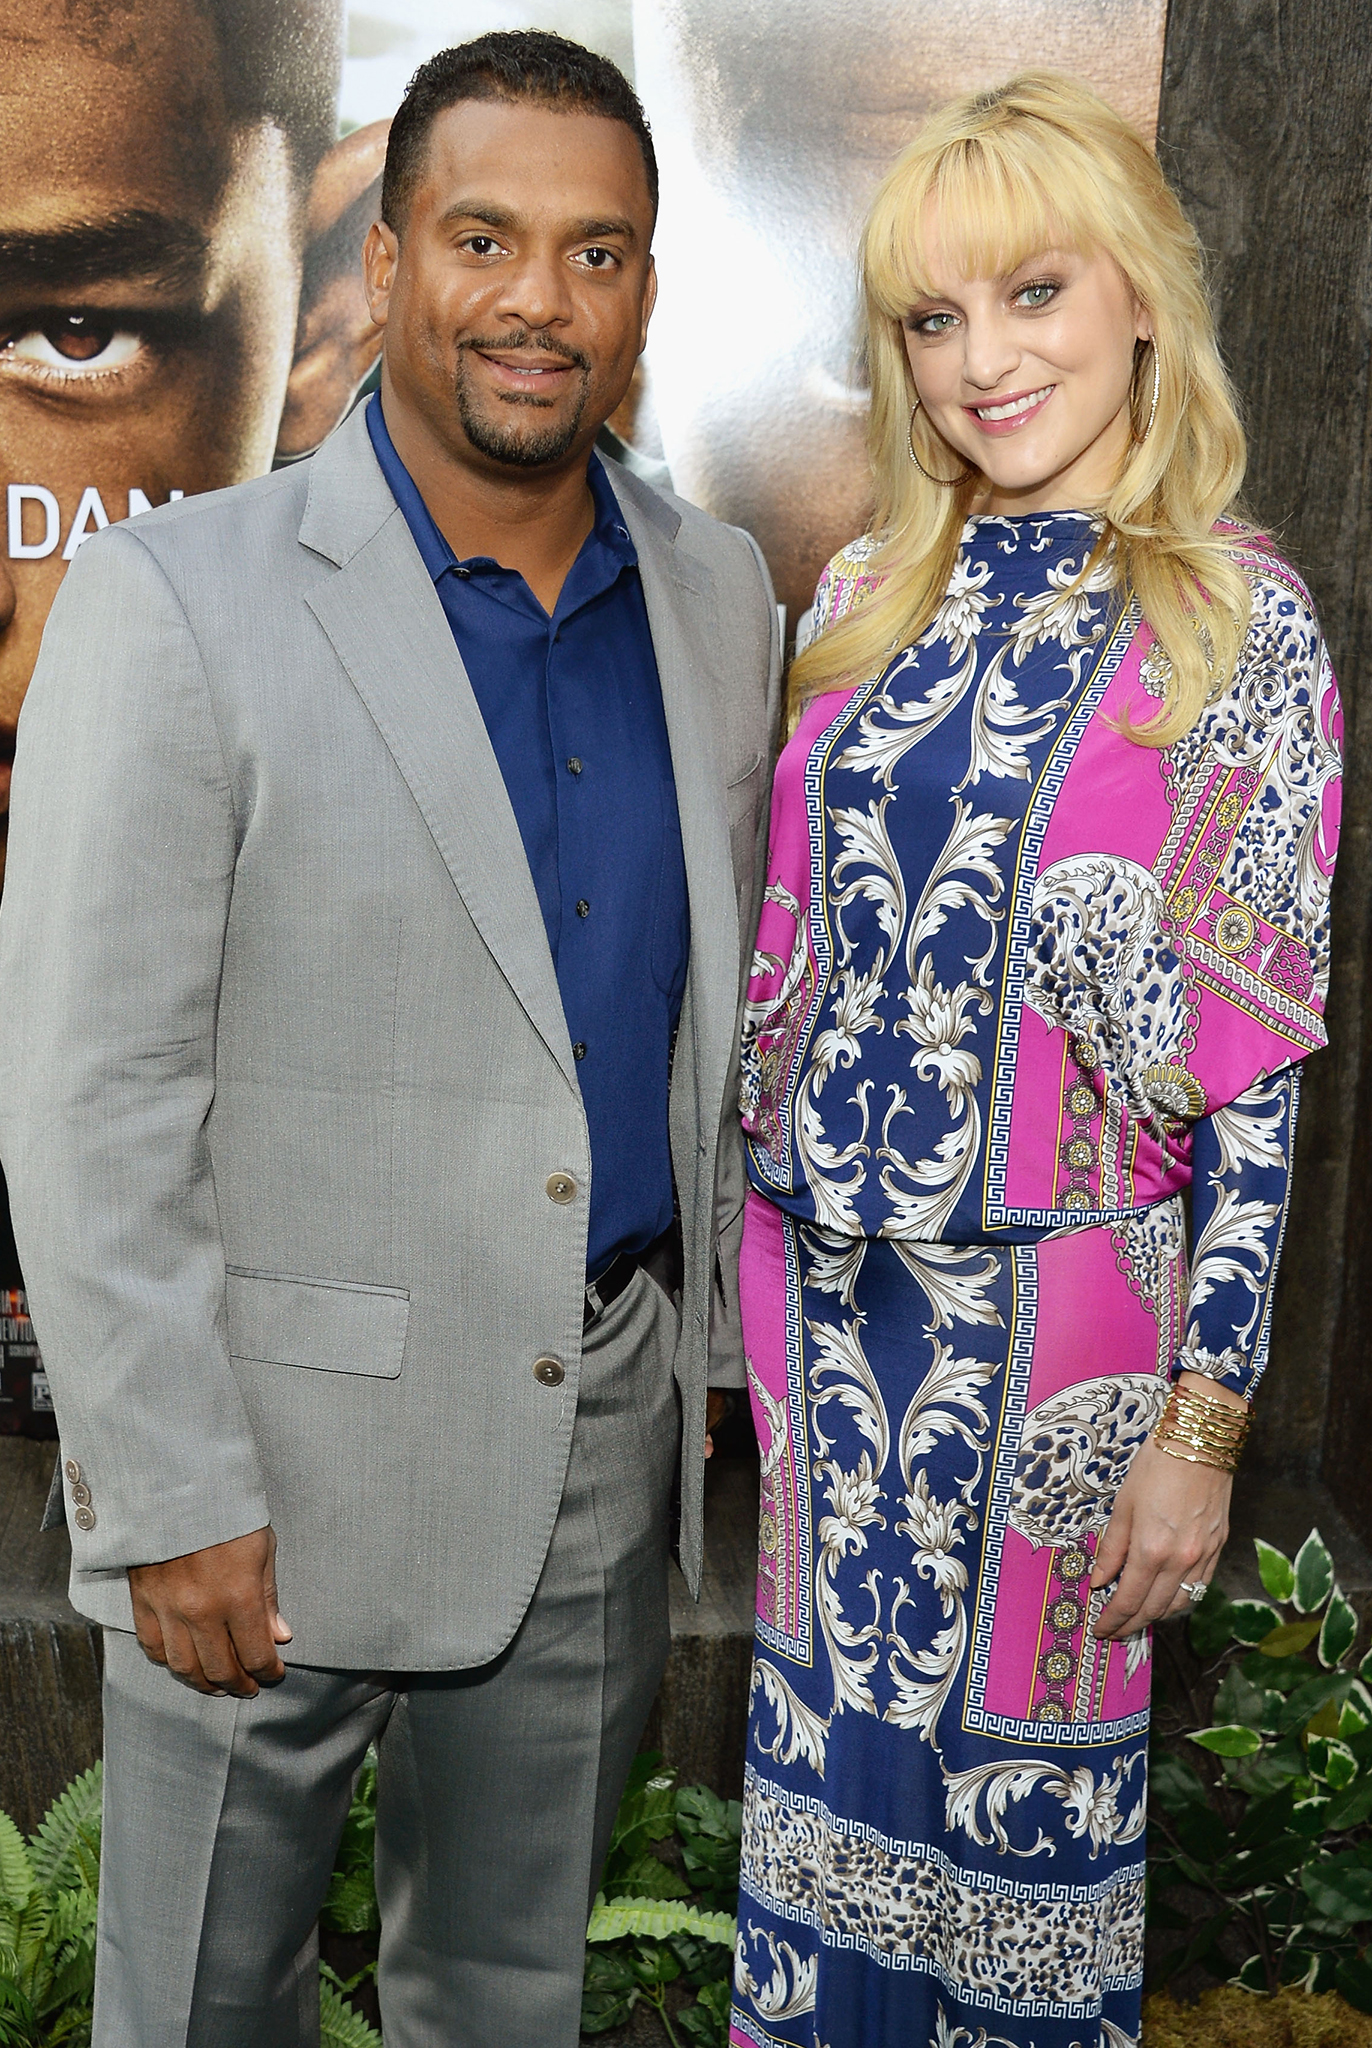 Alfonso Ribeiro and wife Angela Unkrich (Getty Images)